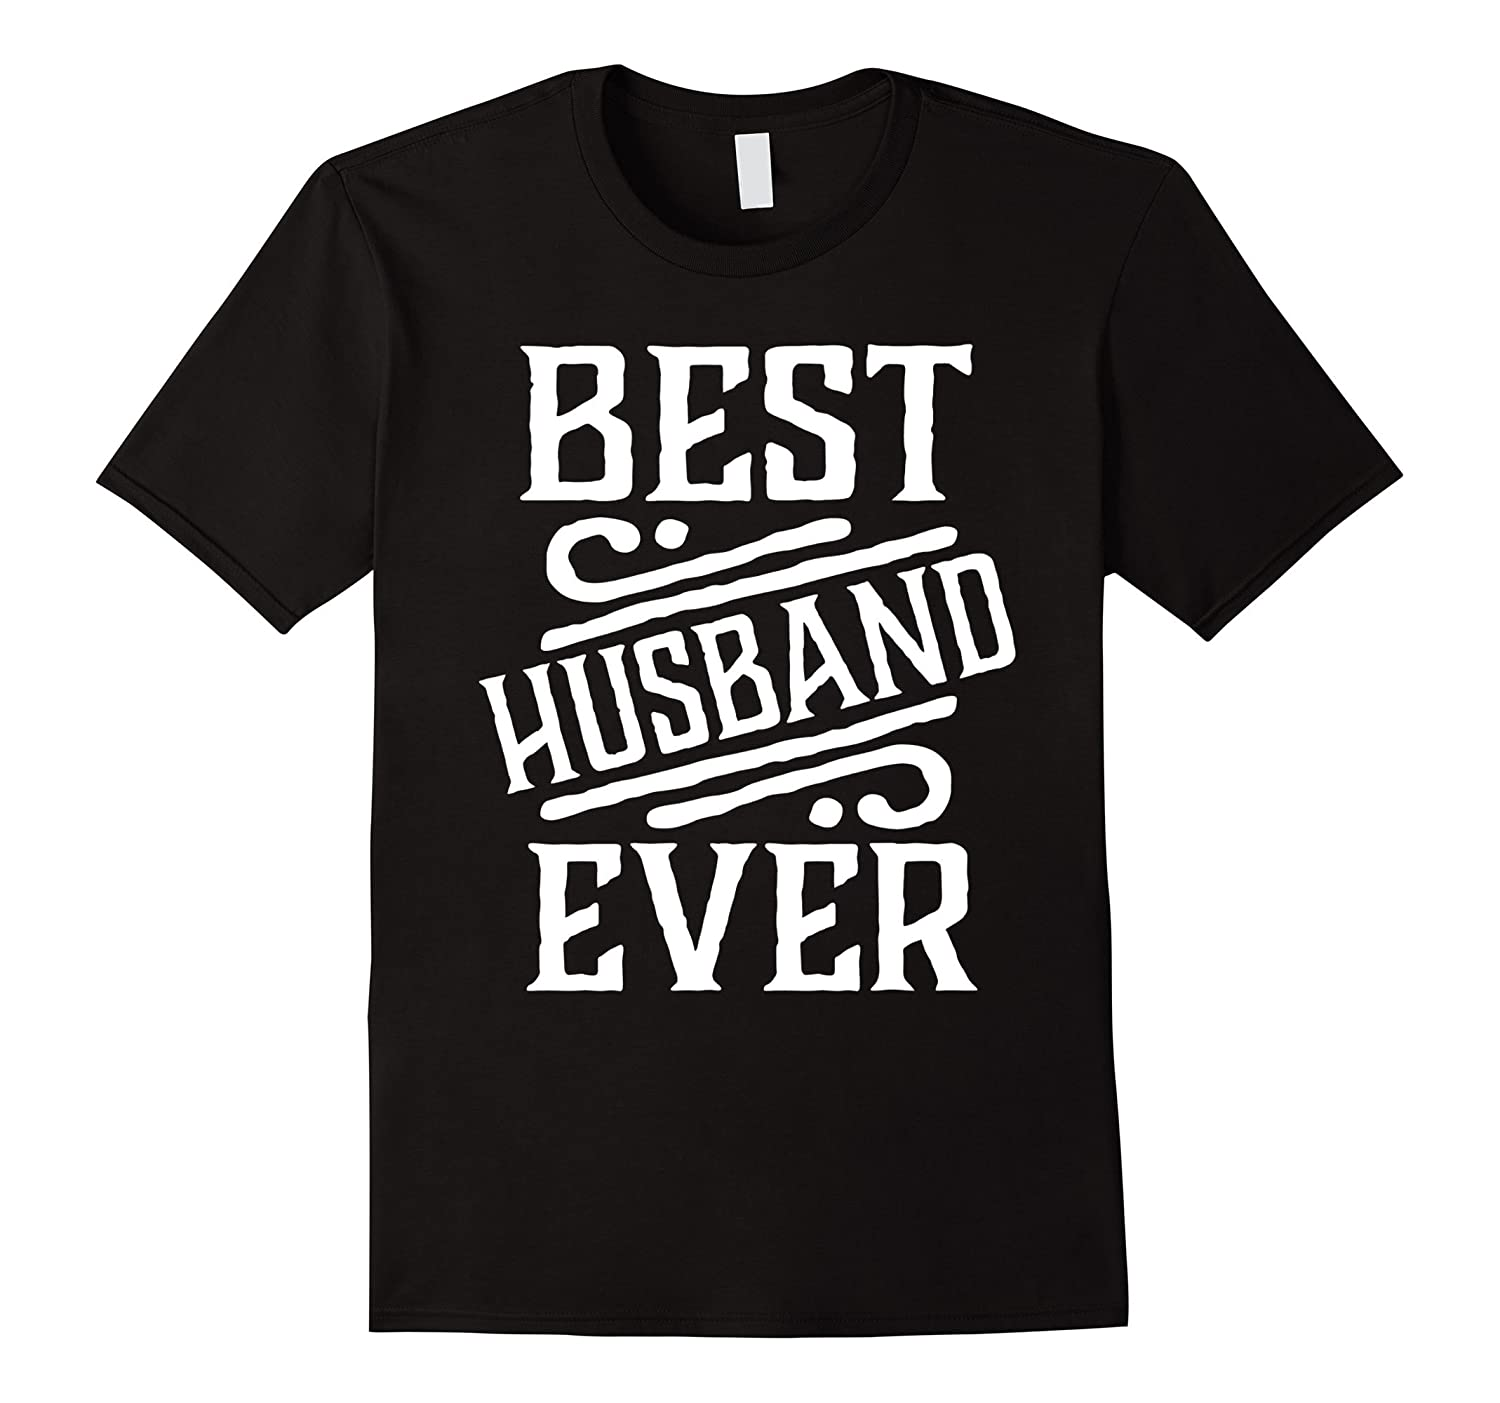 Best Husband Ever Shirt Valentine Gifts For Him Tshirt-CL